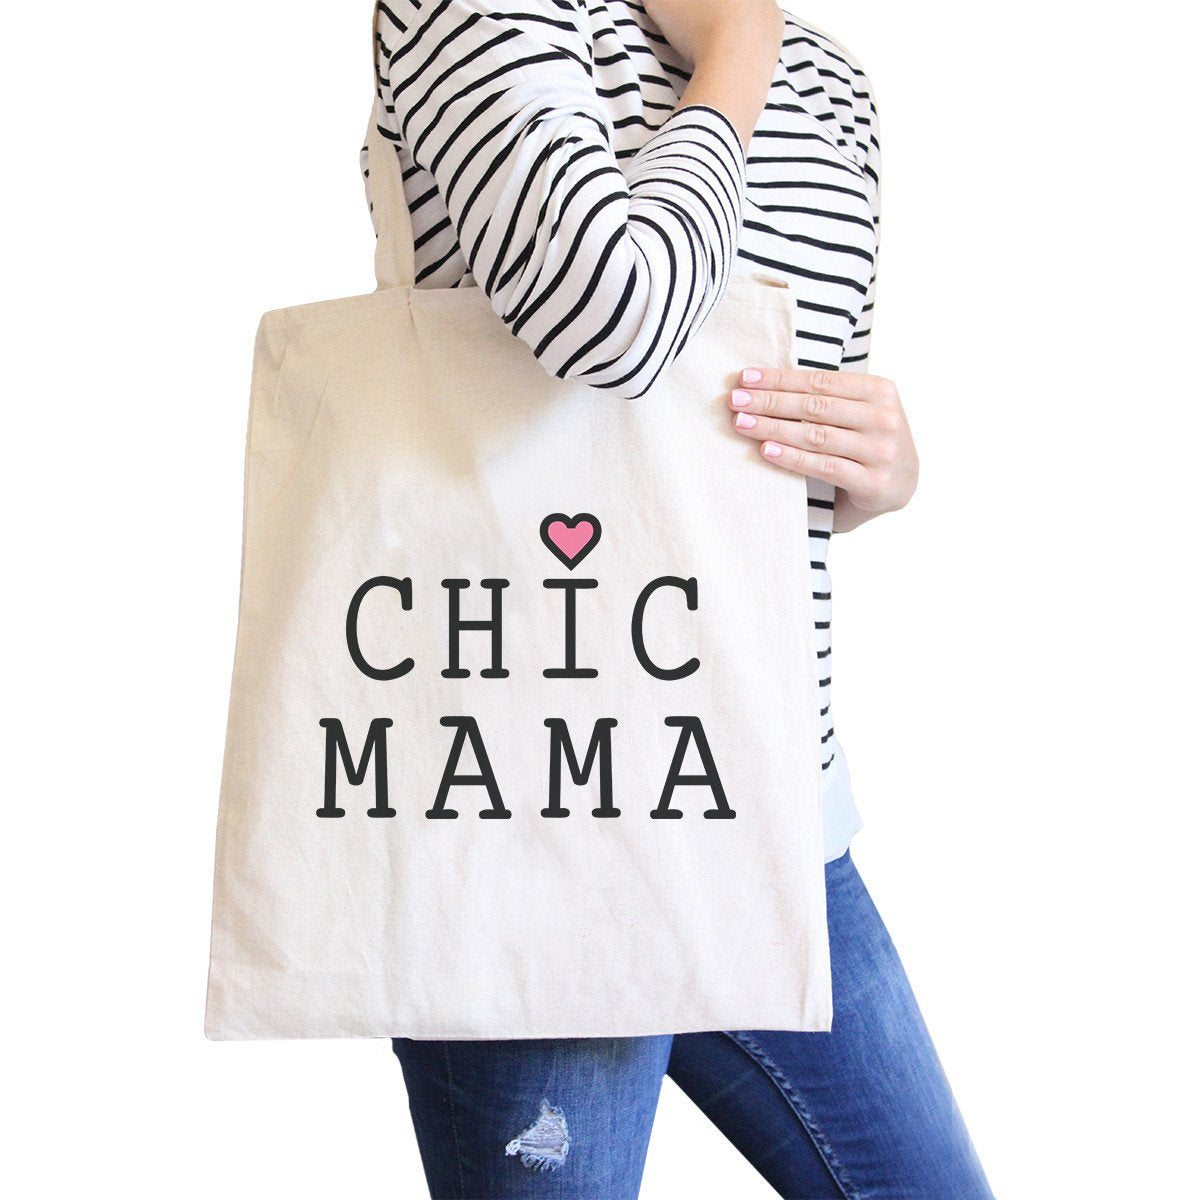 Chic Mama Natural Canvas Tote Bag Gift Ideas For Young Grandmother